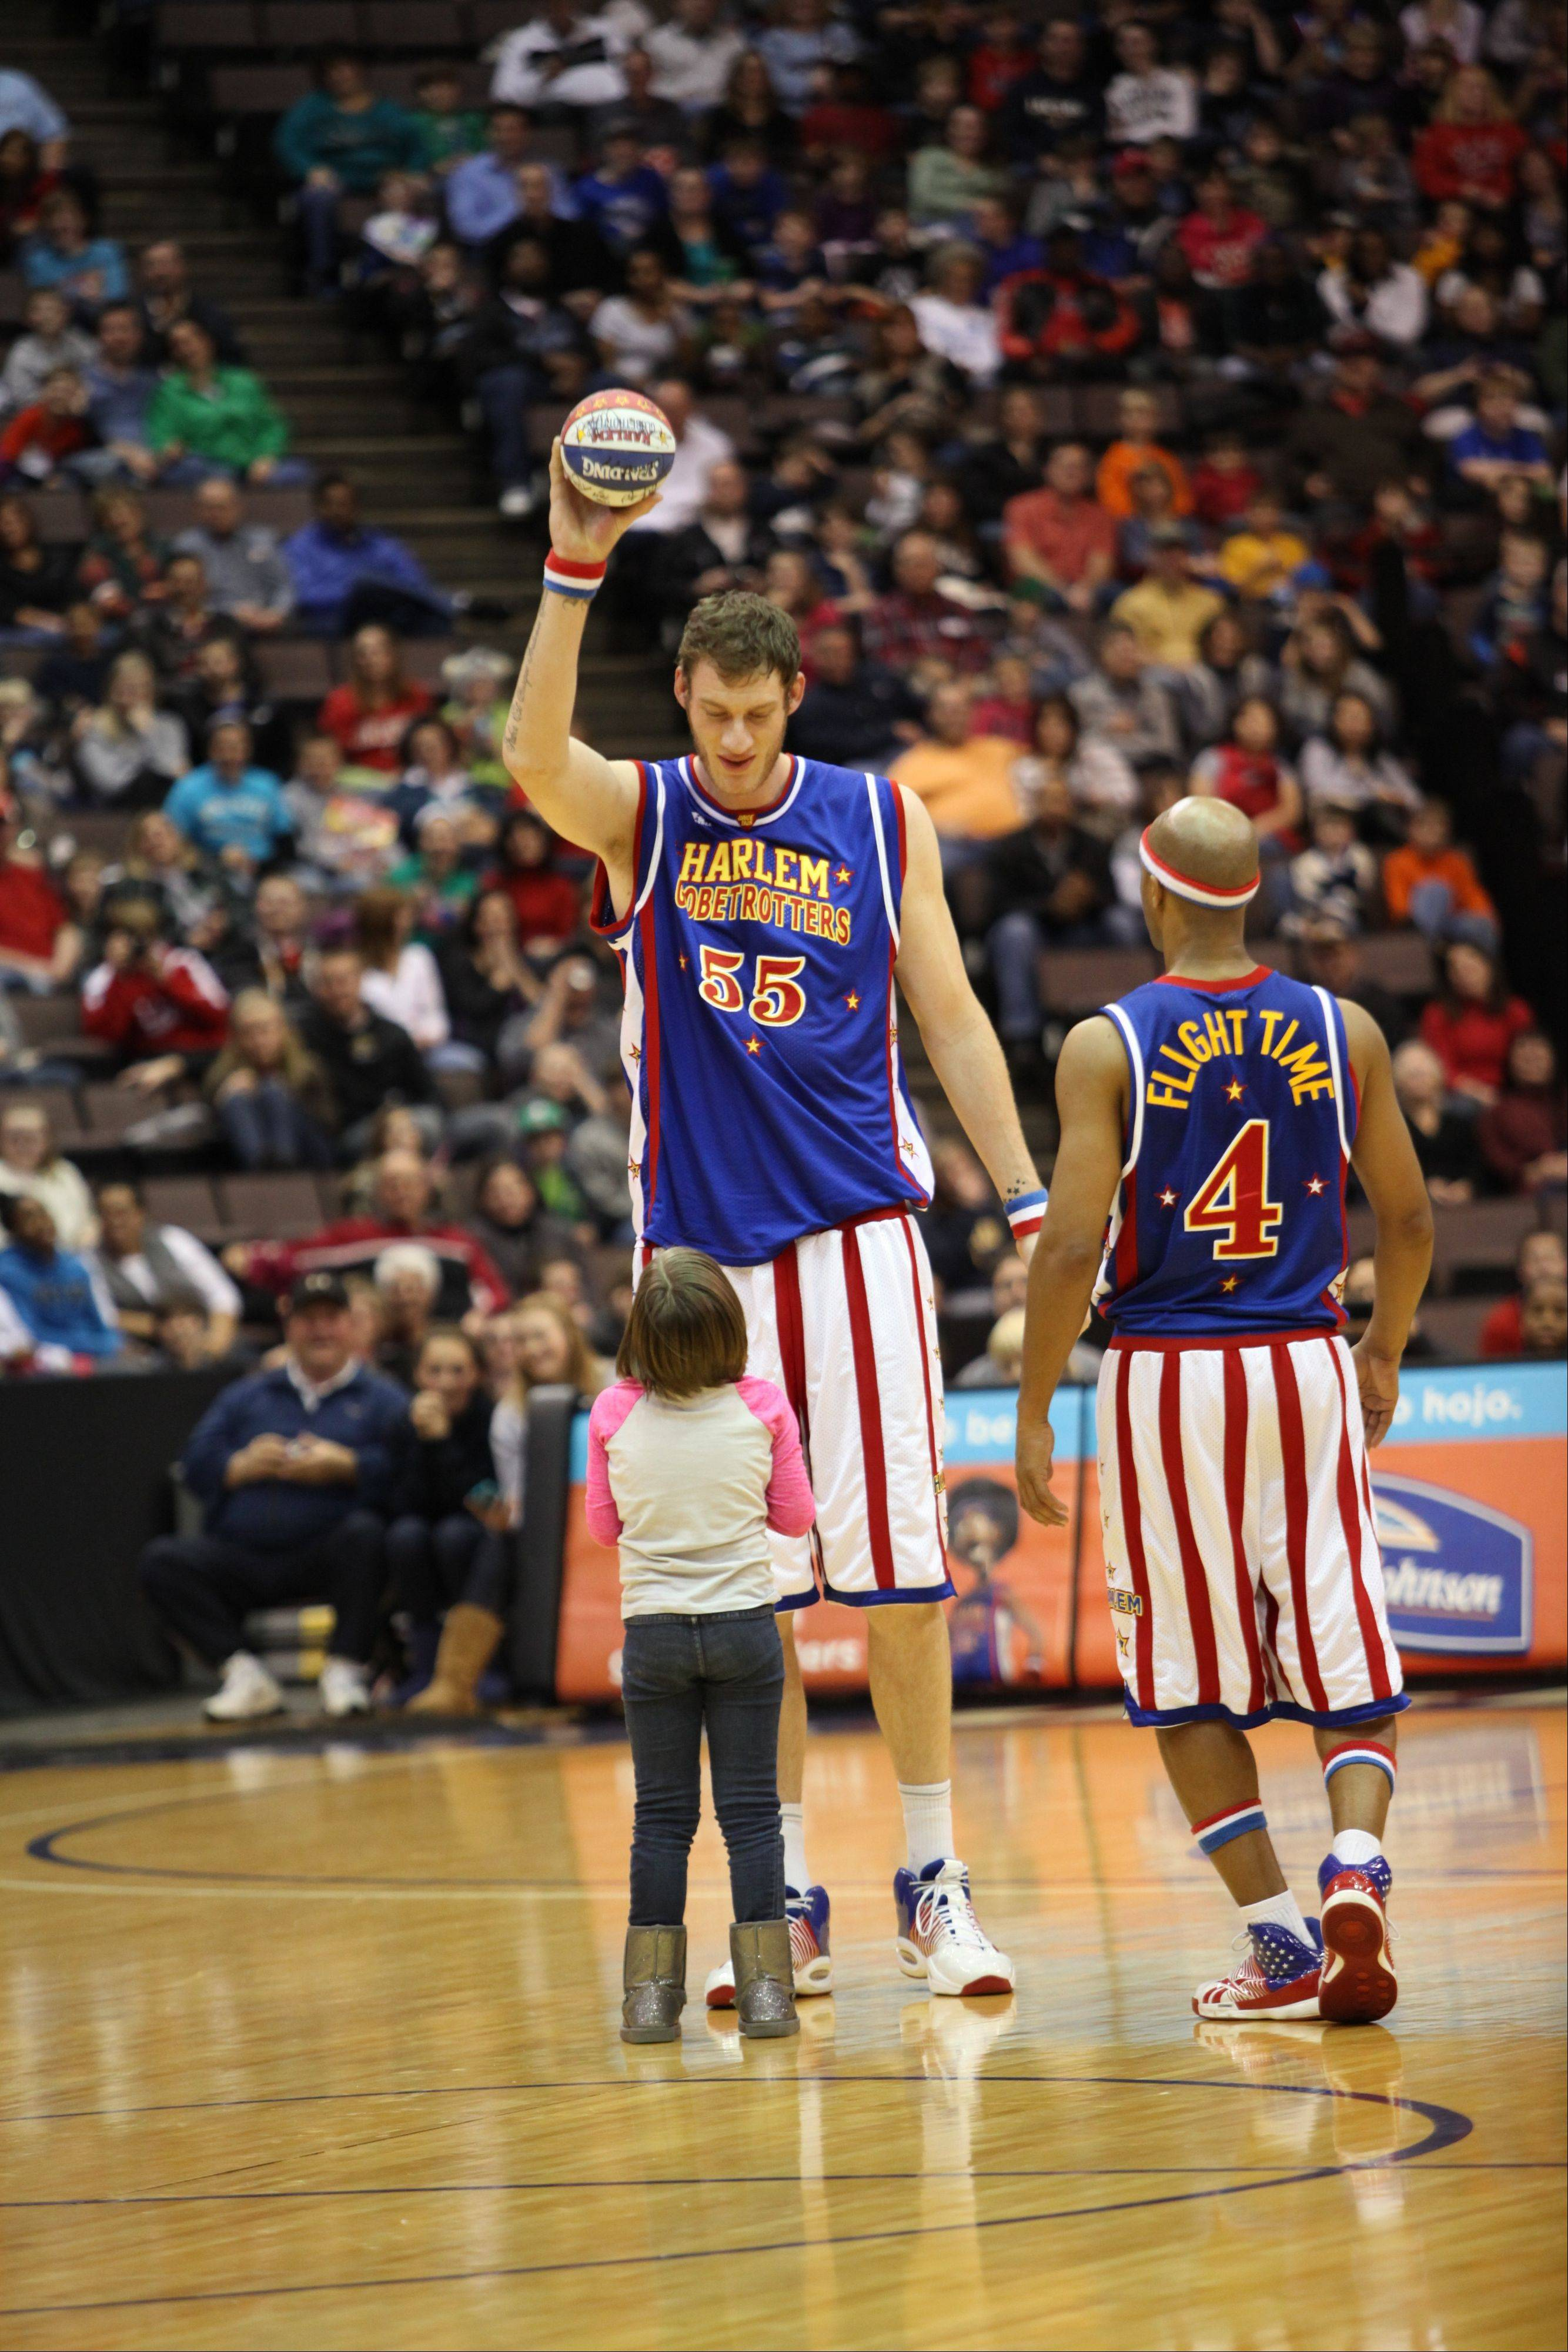 Tiny Sturgess and Flight Time Lang of the Harlem Globetrotters clown around with a basketball. The comedy basketball team comes to the Allstate Arena in Rosemont for two games on Friday, Dec. 28.